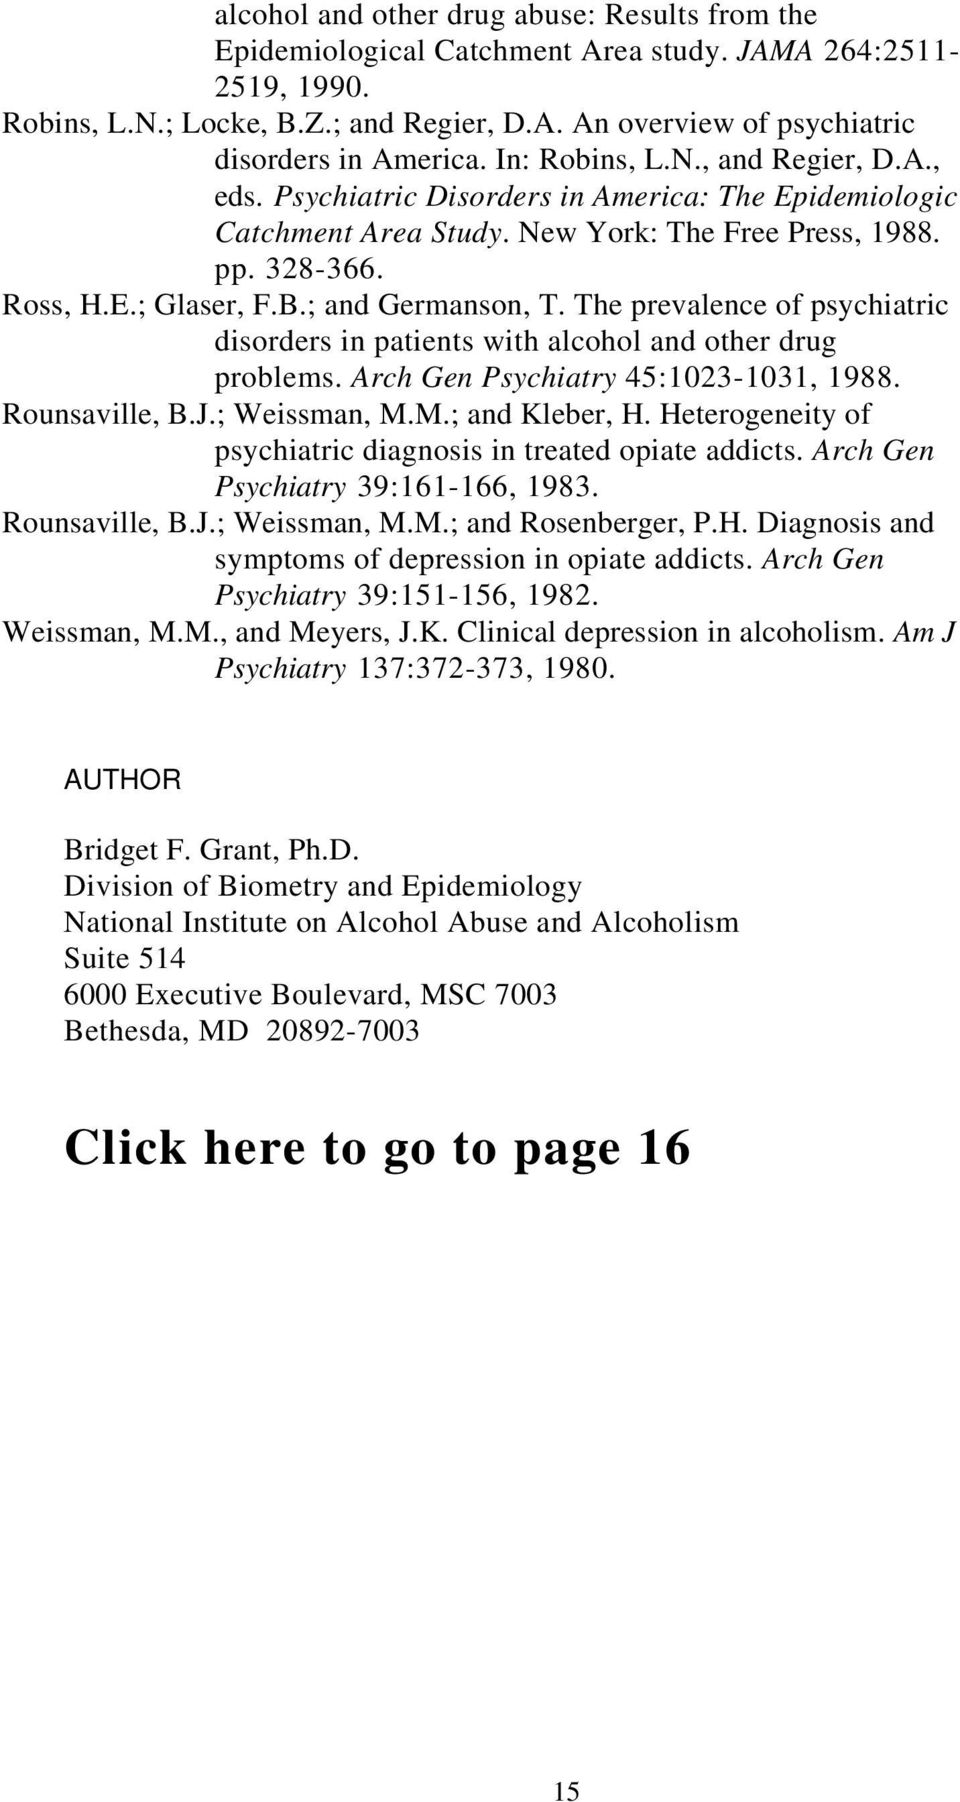 ; and Germanson, T. The prevalence of psychiatric disorders in patients with alcohol and other drug problems. Arch Gen Psychiatry 45:1023-1031, 1988. Rounsaville, B.J.; Weissman, M.M.; and Kleber, H.